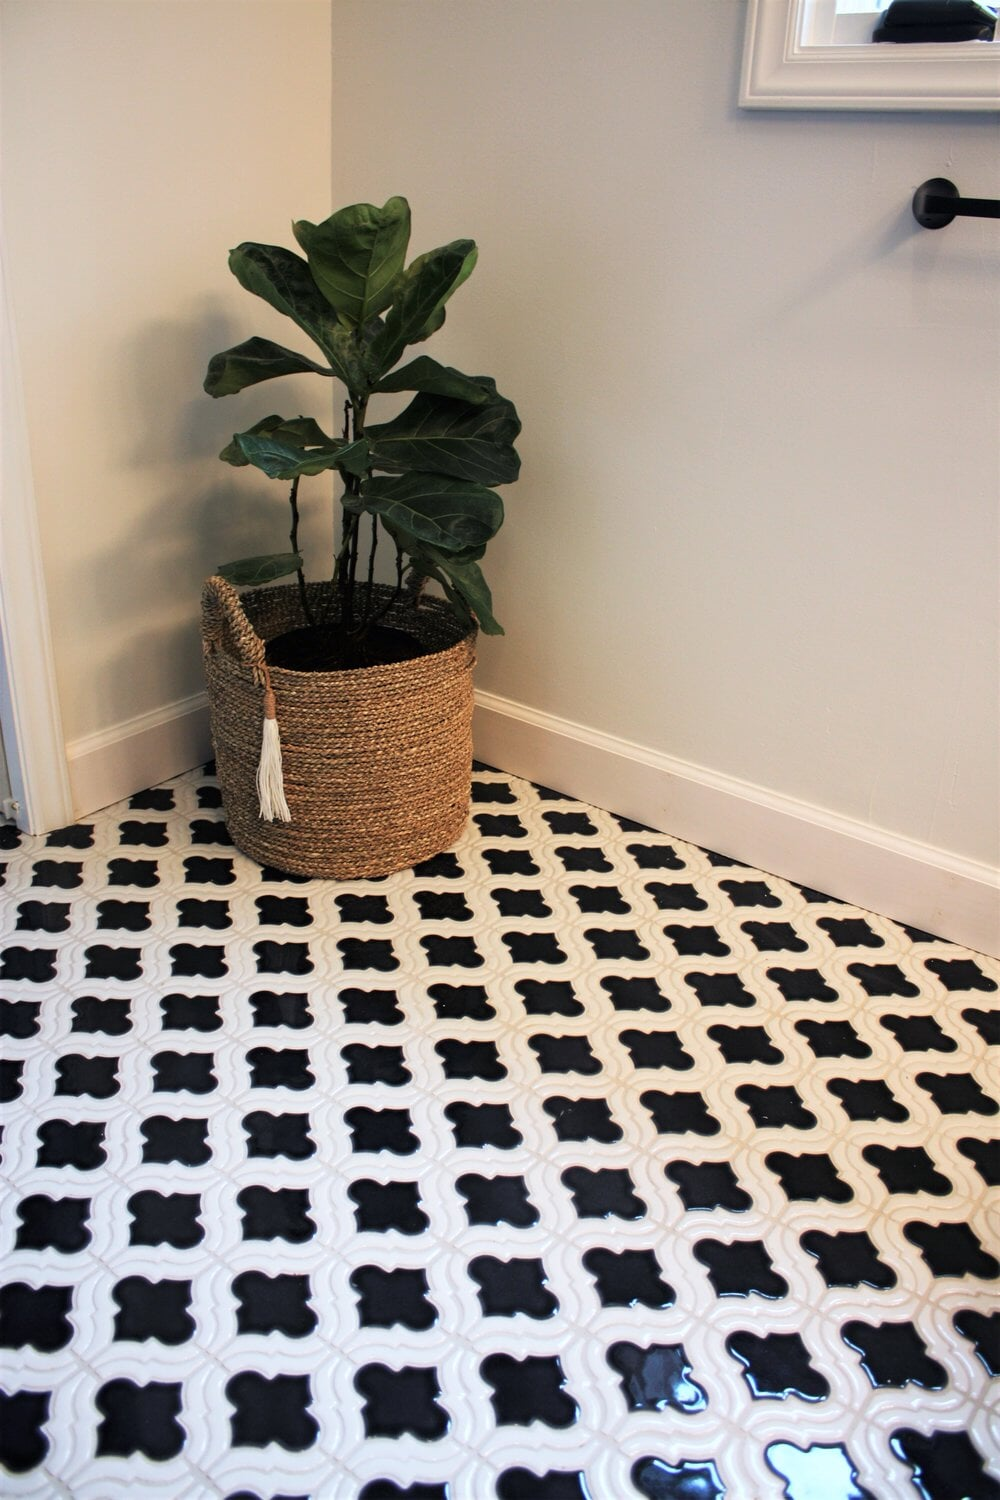 Custom black and white tile flooring in Davidson, NC from LITTLE Wood Flooring & Cabinetry